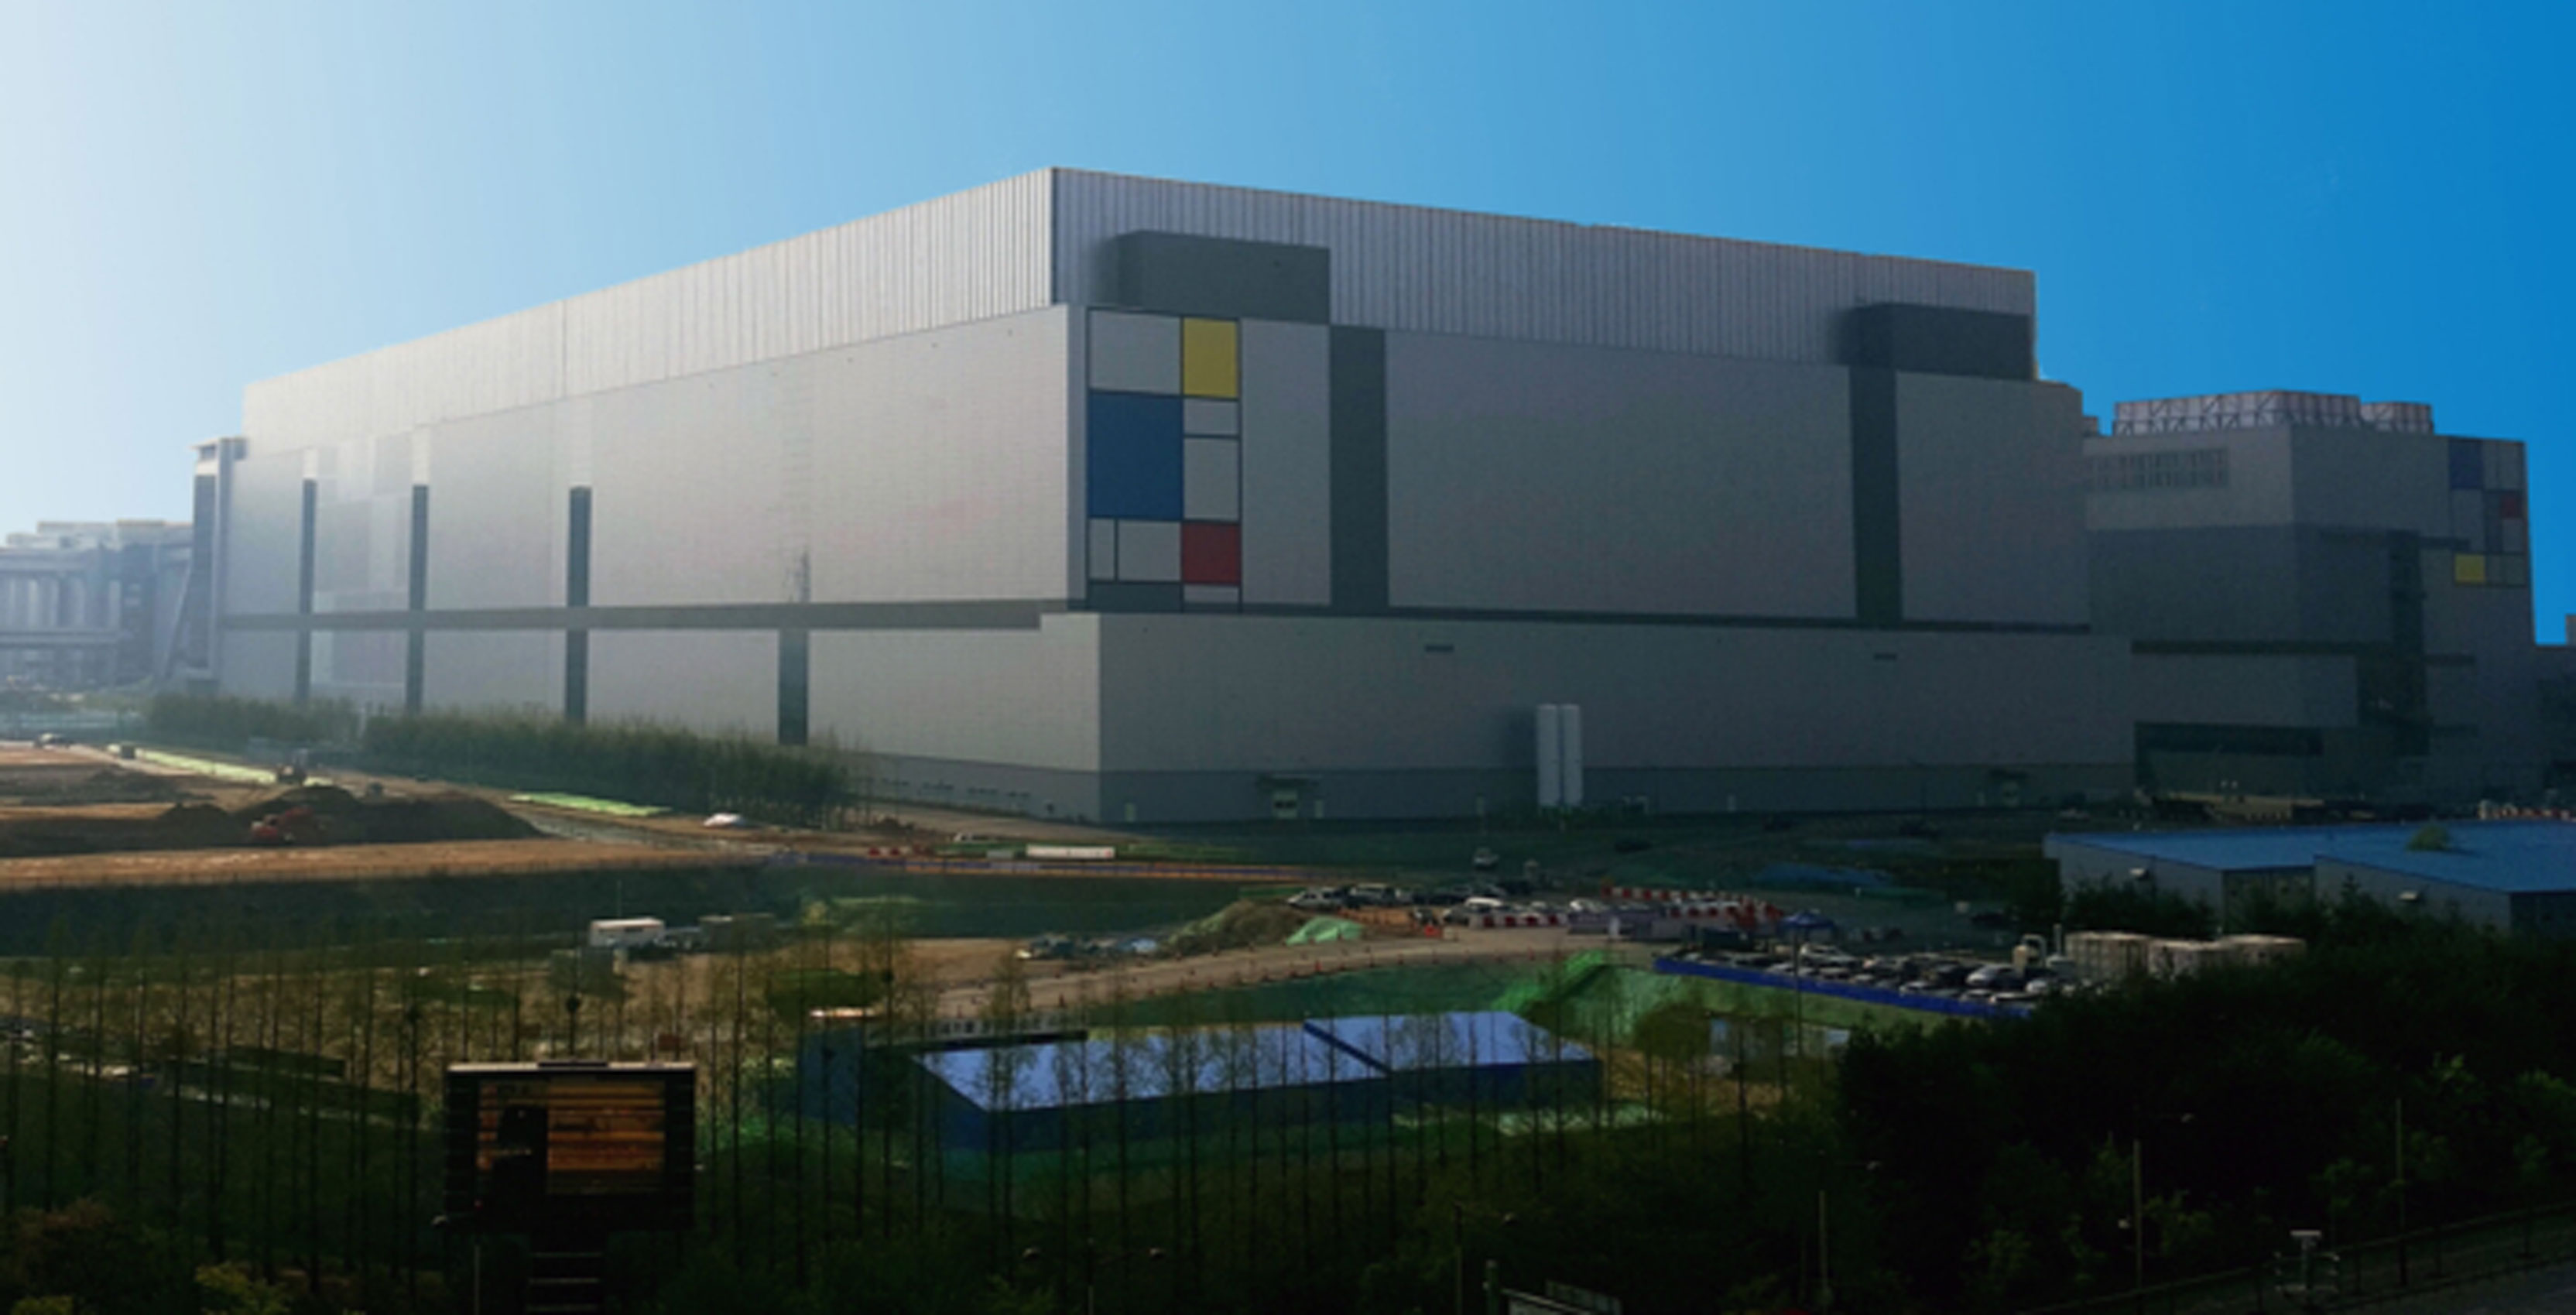 Samsung and Qualcomm extend foundry relationship to EUV process technology